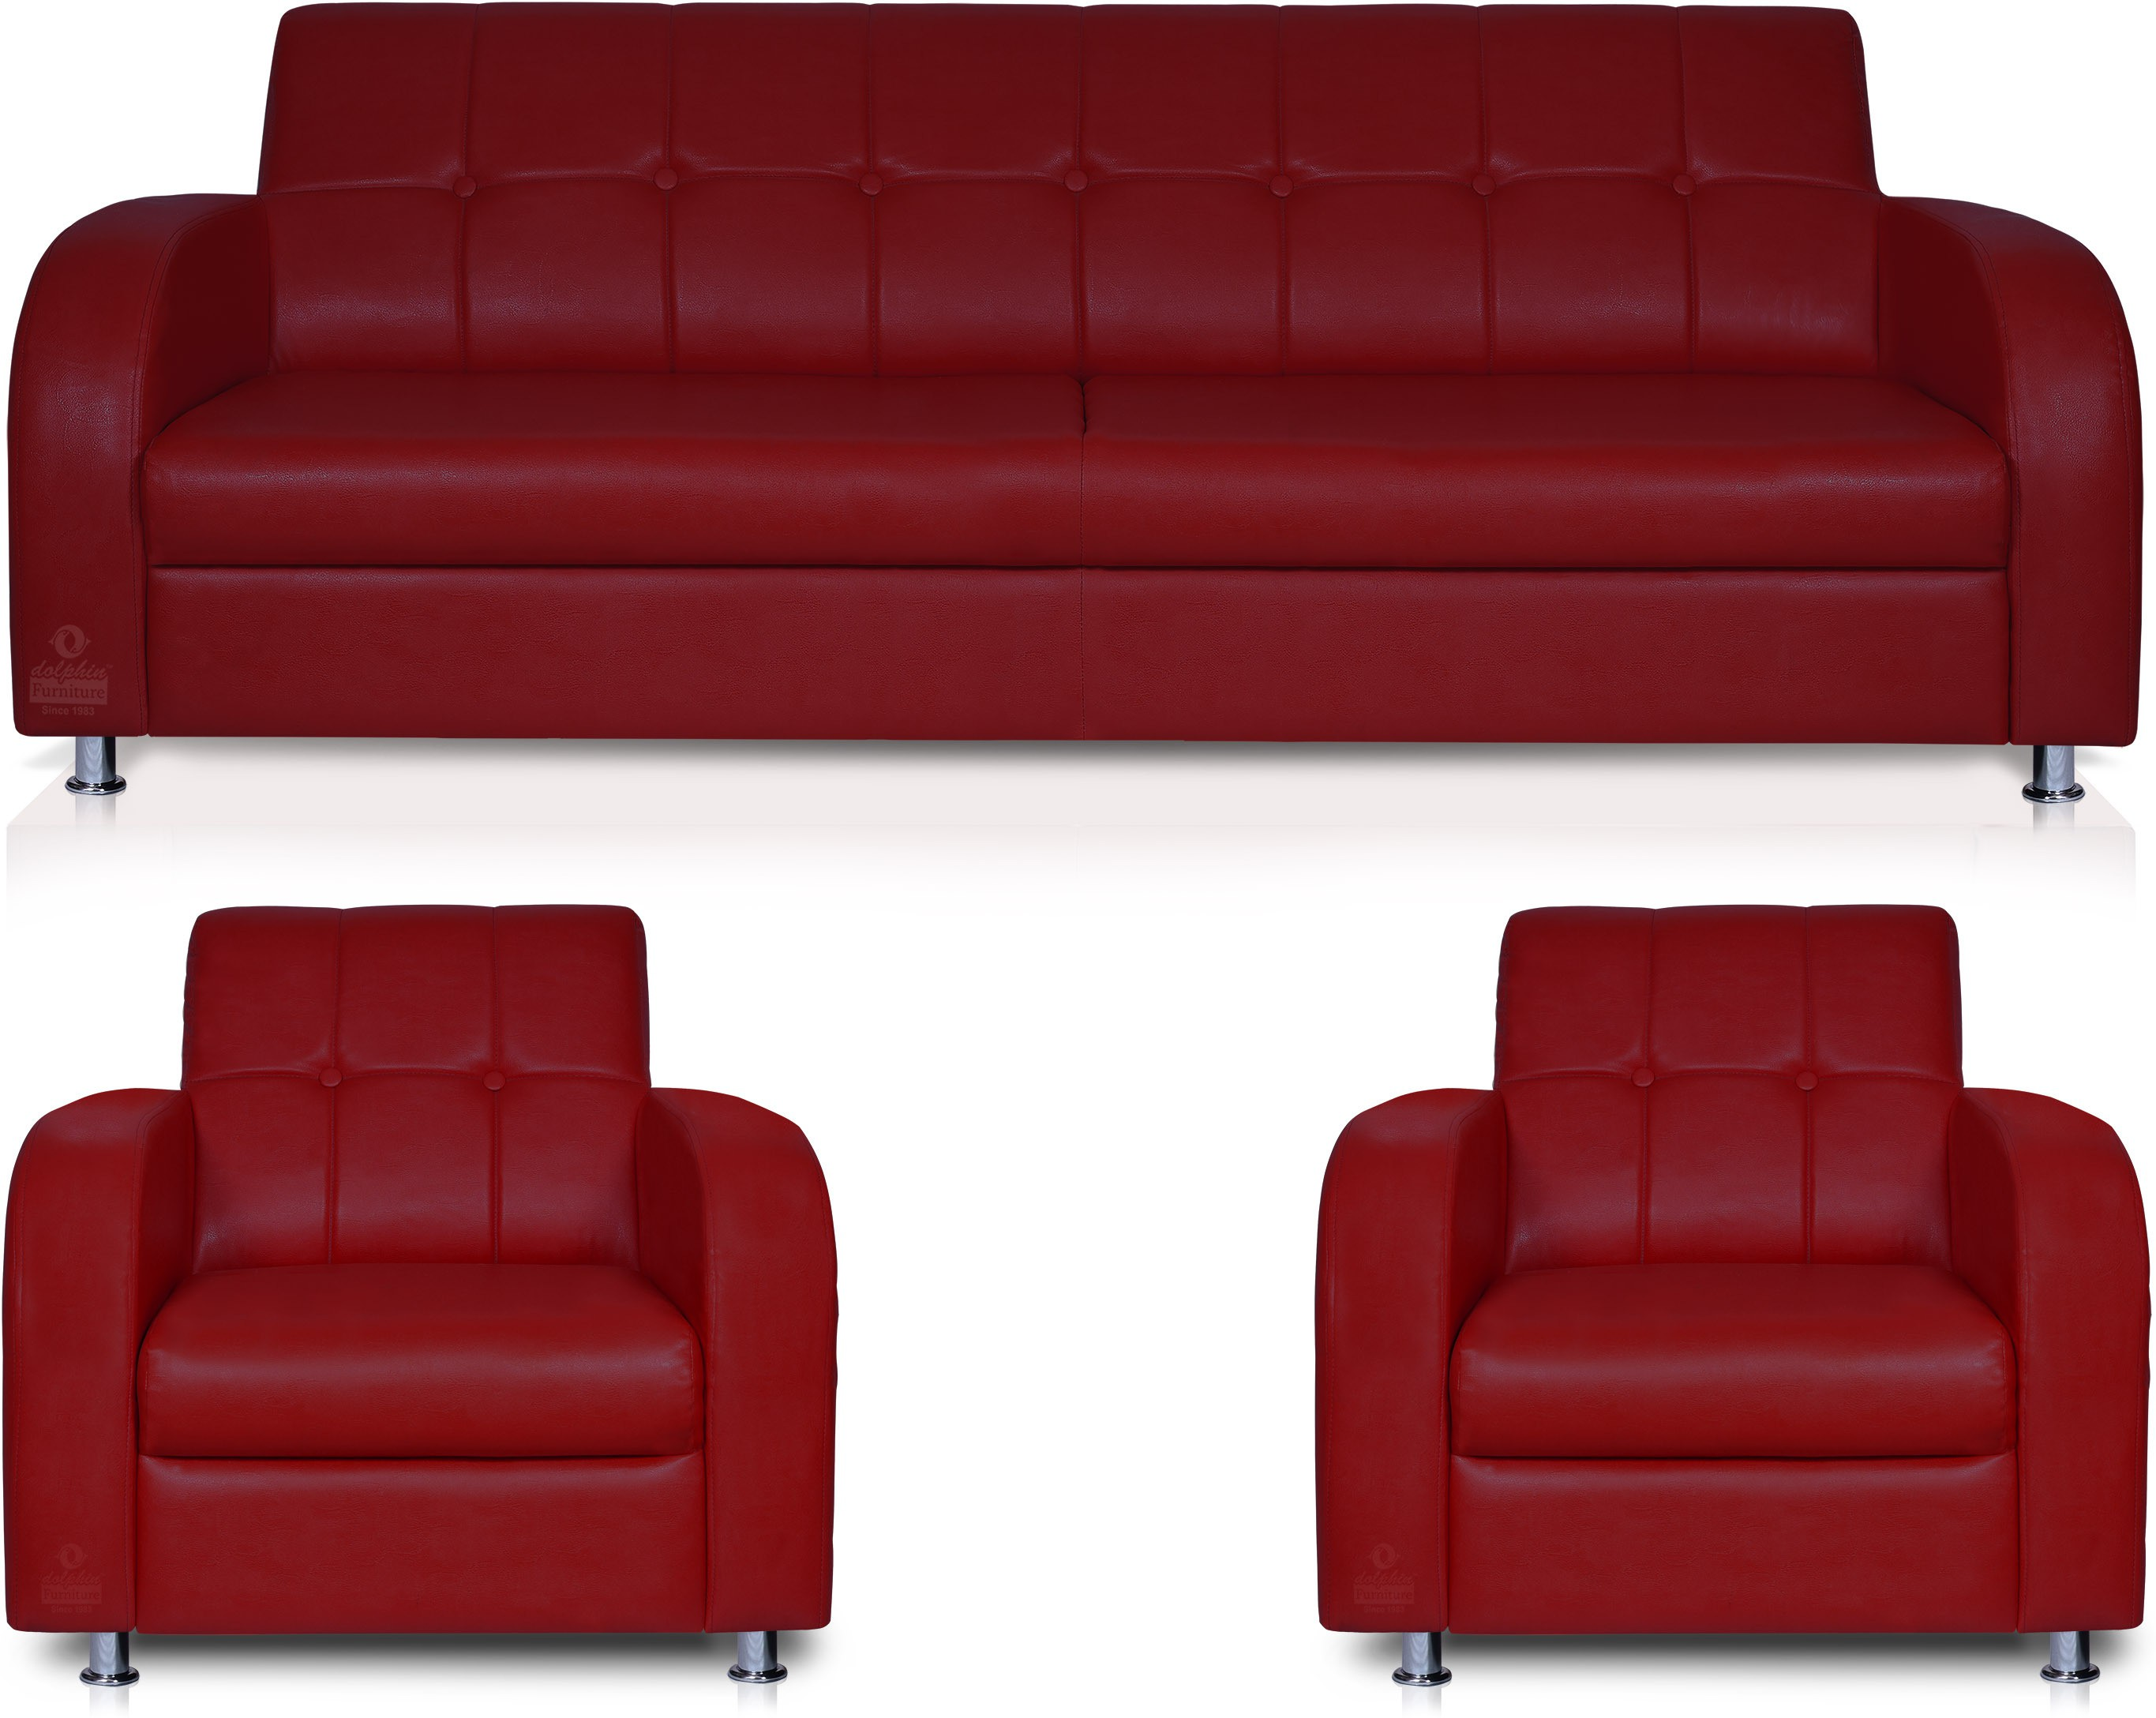 View Dolphin Leatherette 3 + 1 + 1 Maroon Sofa Set(Configuration - Straight) Furniture (Dolphin)